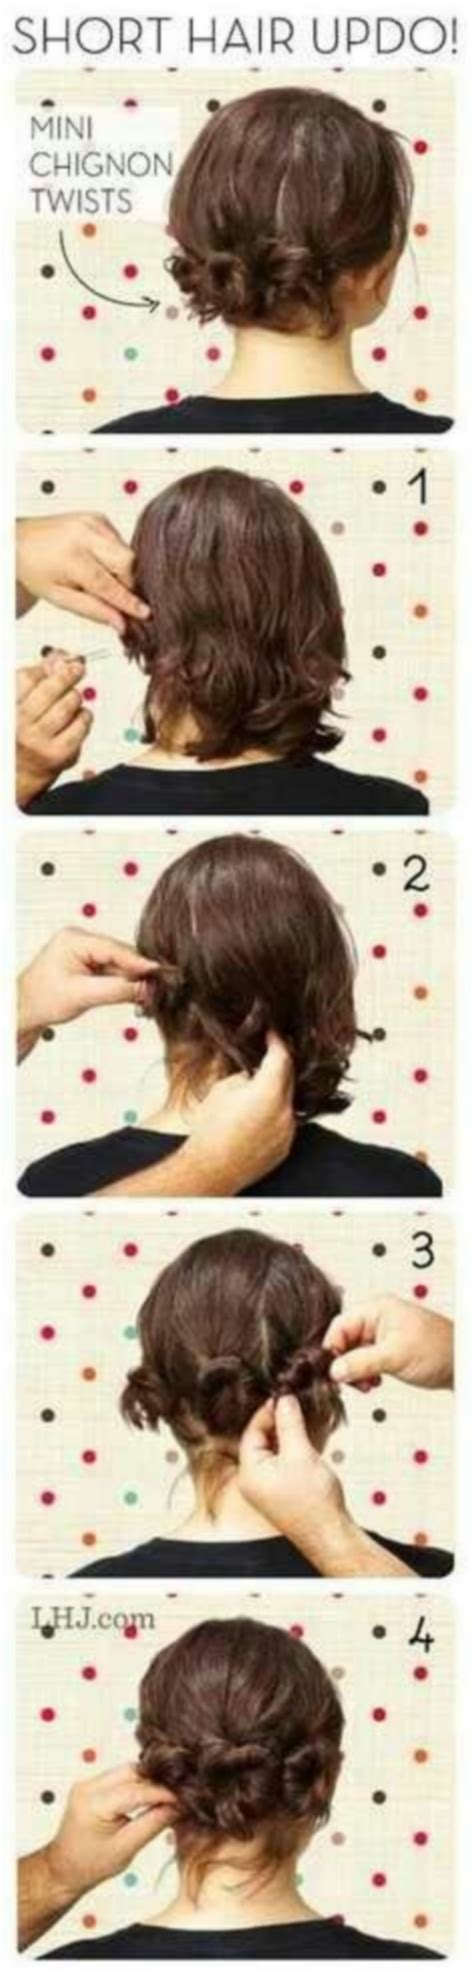 Curly Hair Updos Step By Step | best updos for short curly hair with picture step by step